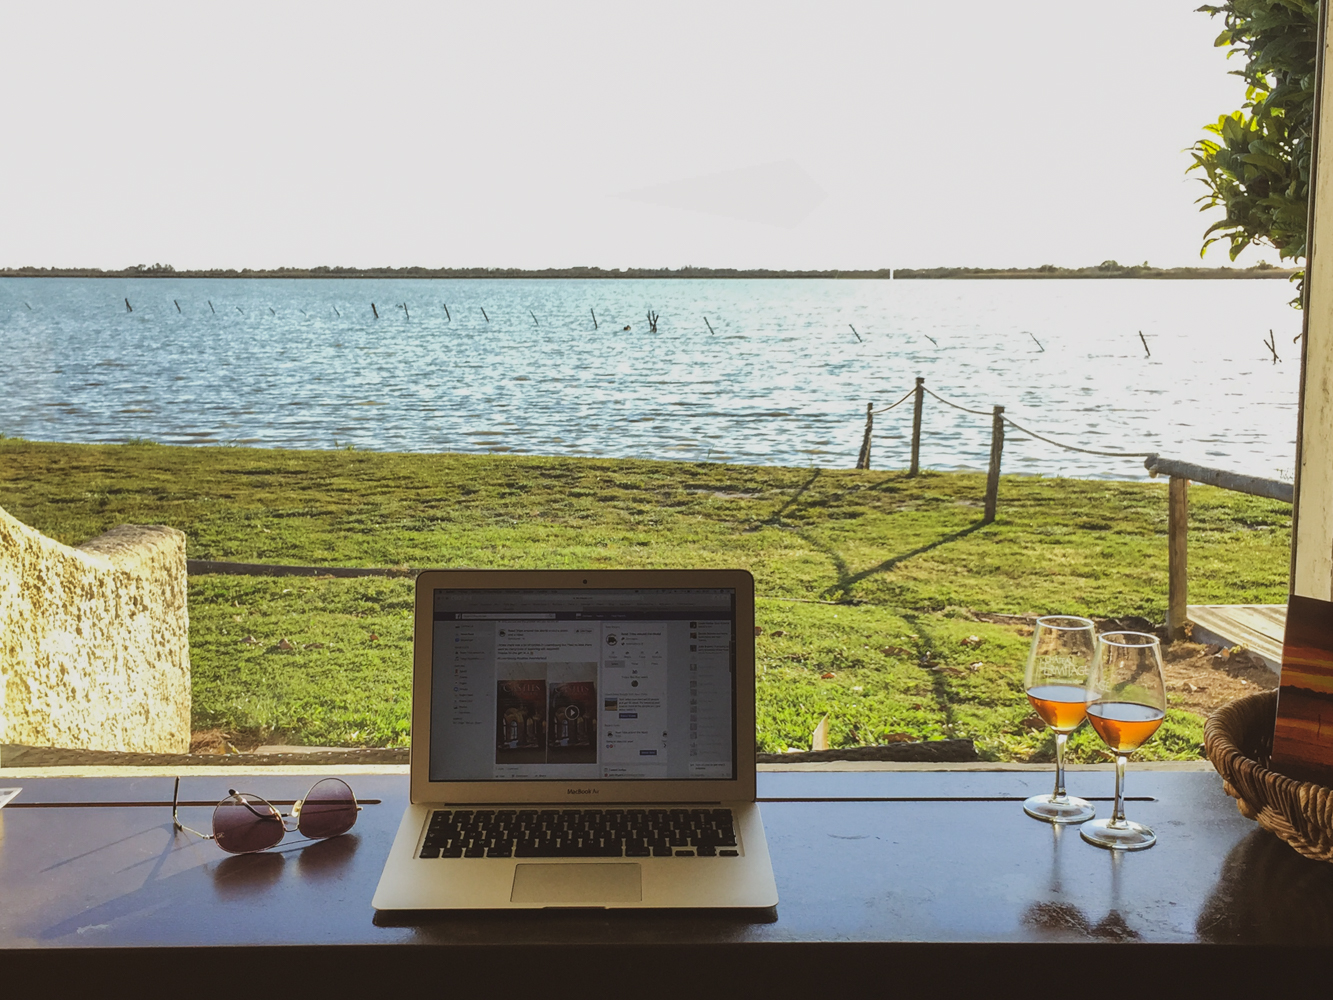 A lot less of remote working and chilling